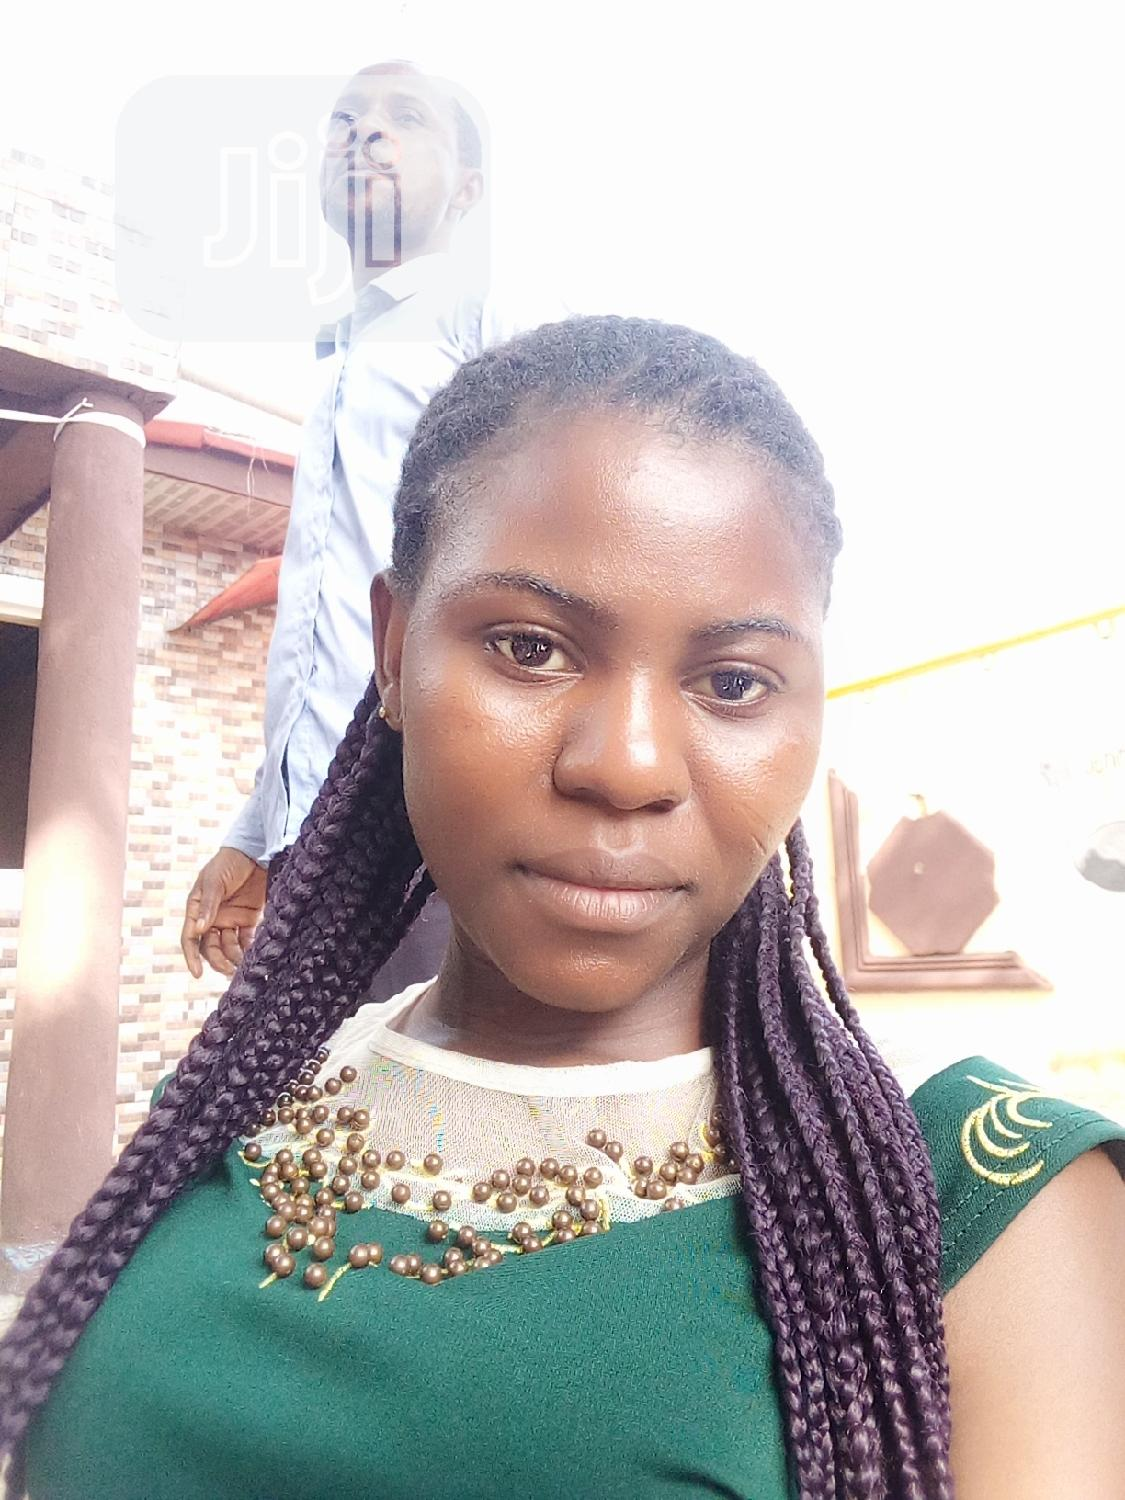 Housekeeping Cleaning CV   Housekeeping & Cleaning CVs for sale in Ajah, Lagos State, Nigeria